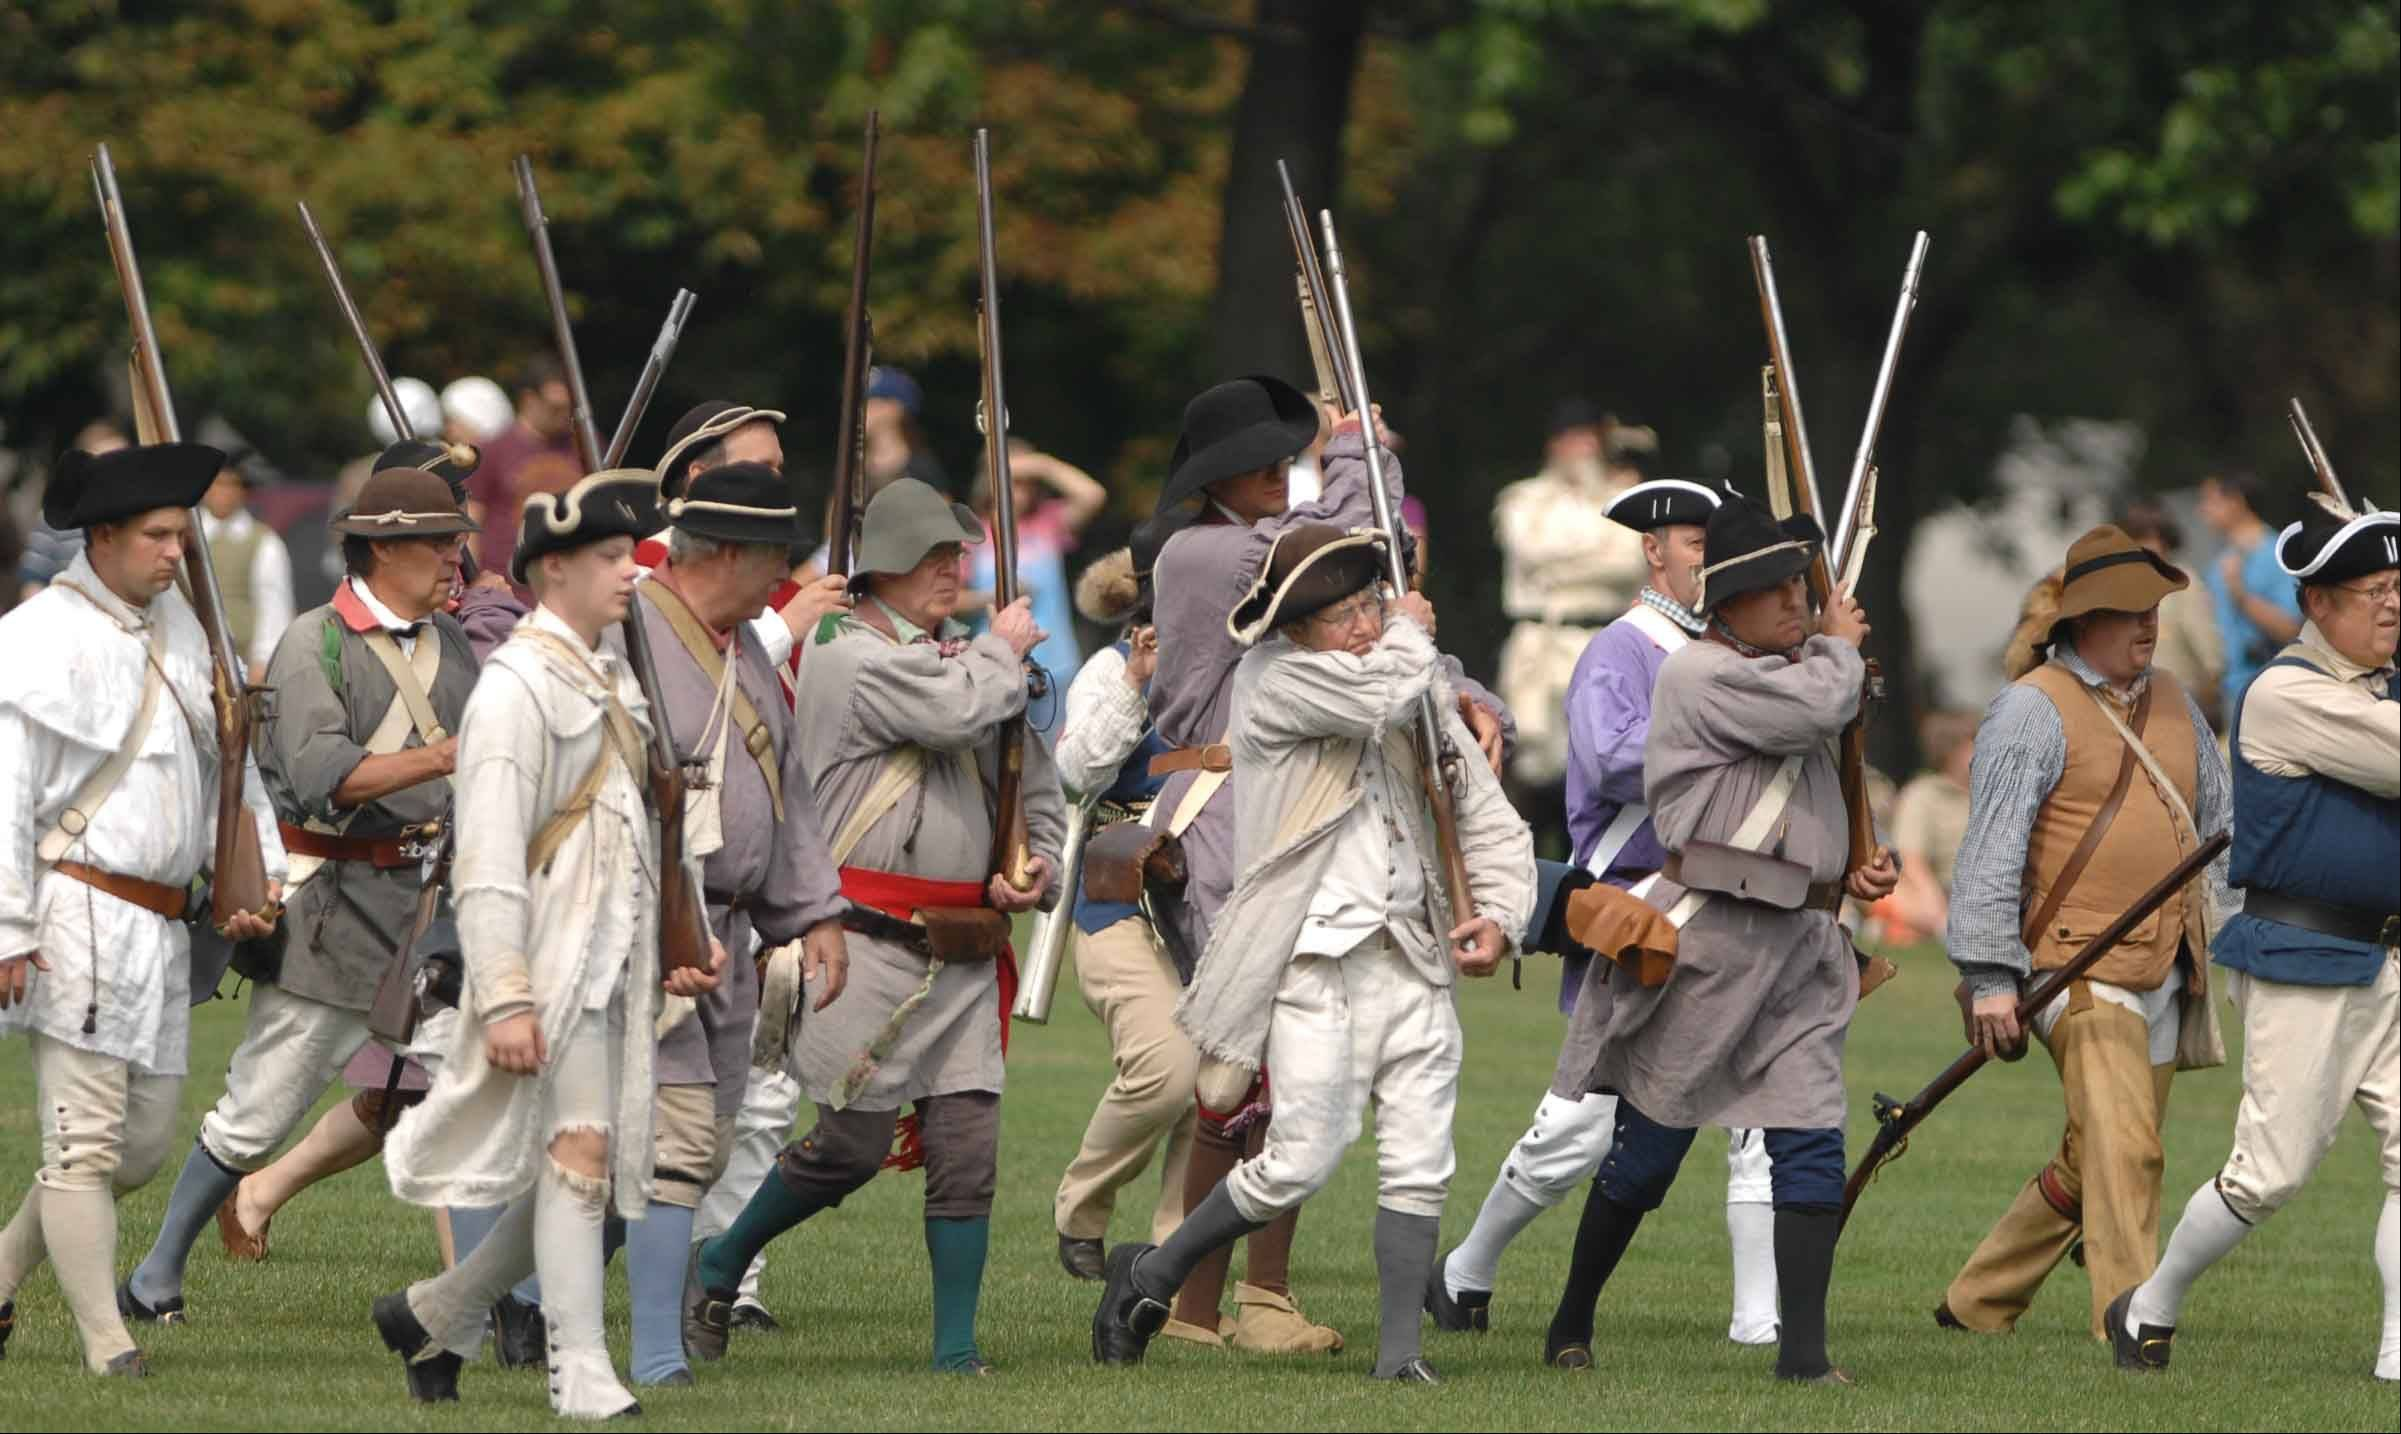 The Revolutionary War re-enactment at Cantigny takes history buffs back further in time than most area encampments, which typically focus on the Civil War.